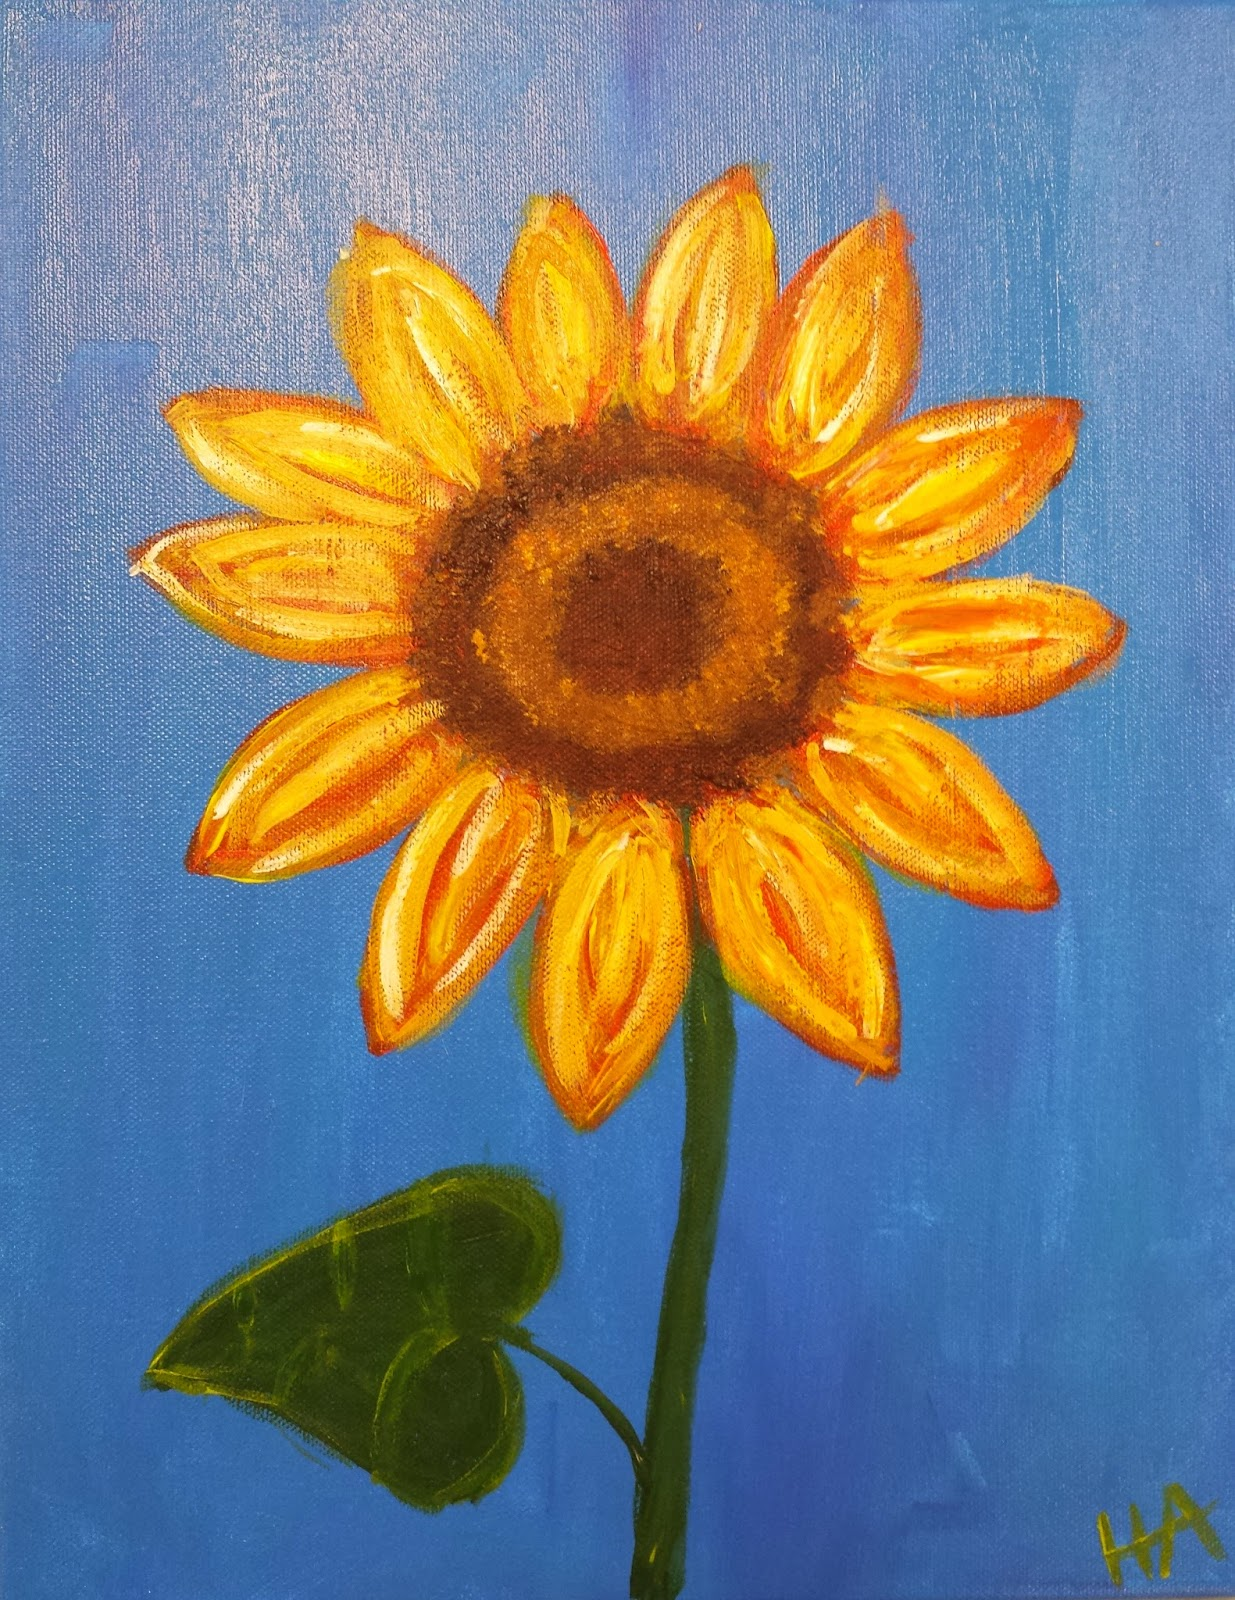 And They Did A Great Job With Their Sunflowers It Is Super Easy My Students Are Ages 7